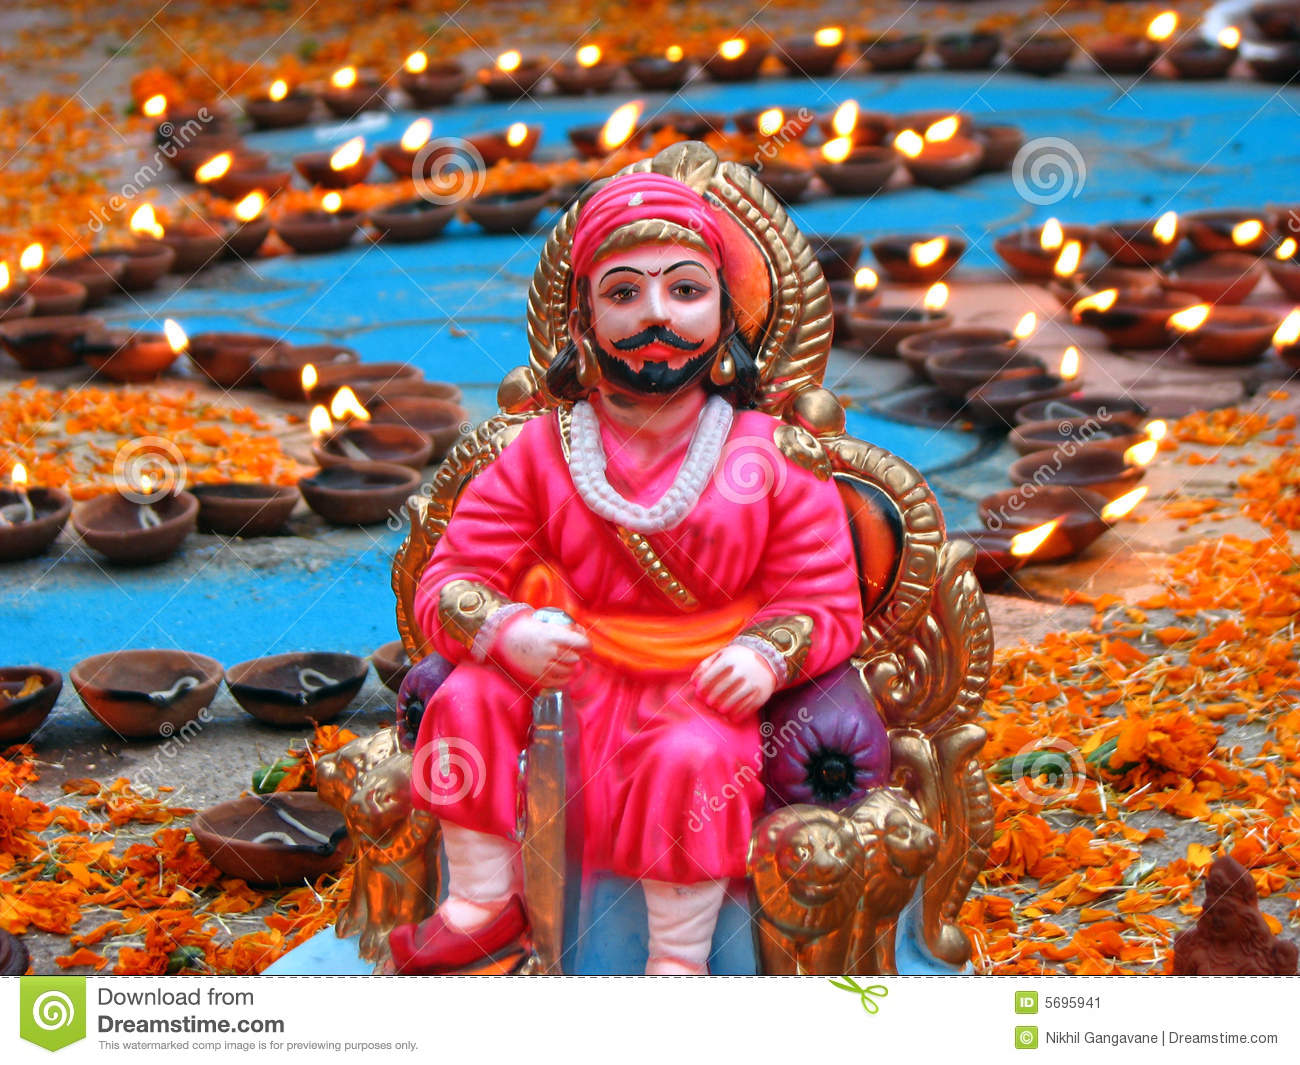 Shivaji Maharaj Photo Free Download: Shivaji Maharaj Stock Image. Image Of Designing, Flora